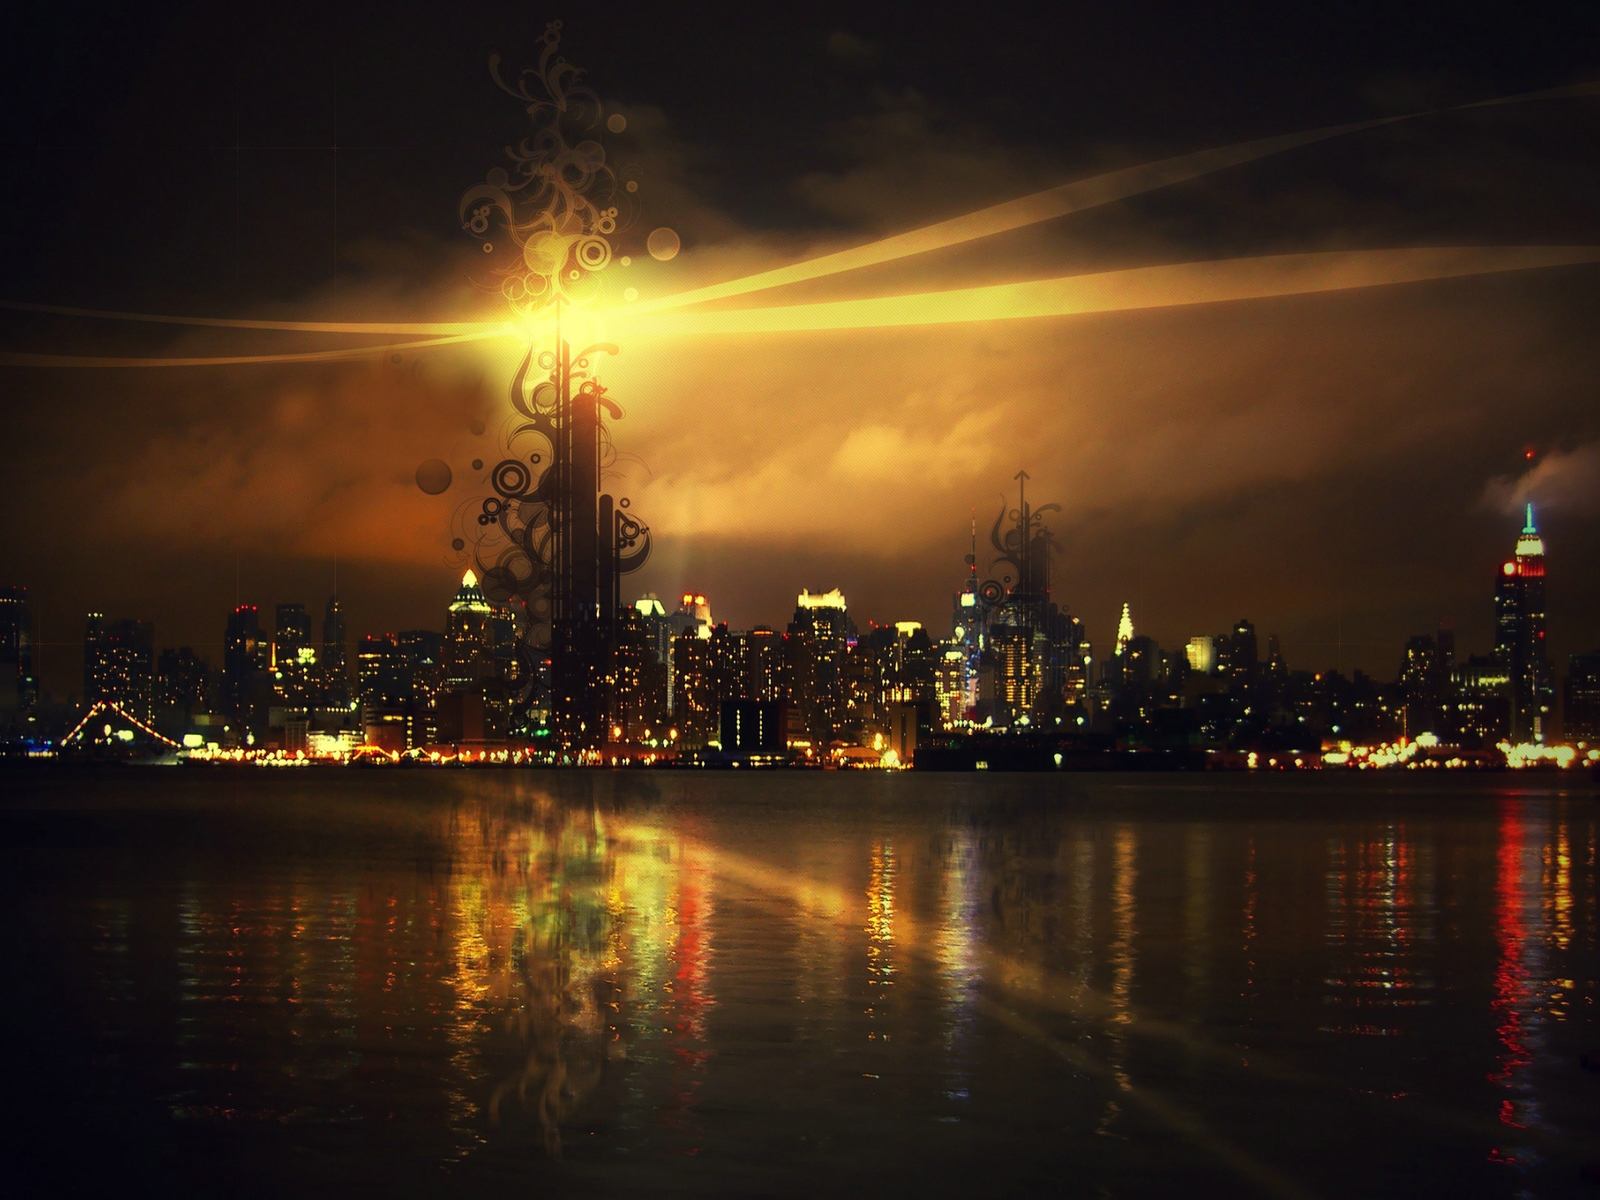 Awesome Wallpapers HD| HD Wallpapers ,Backgrounds ,Photos ...  Awesome Wallpap...